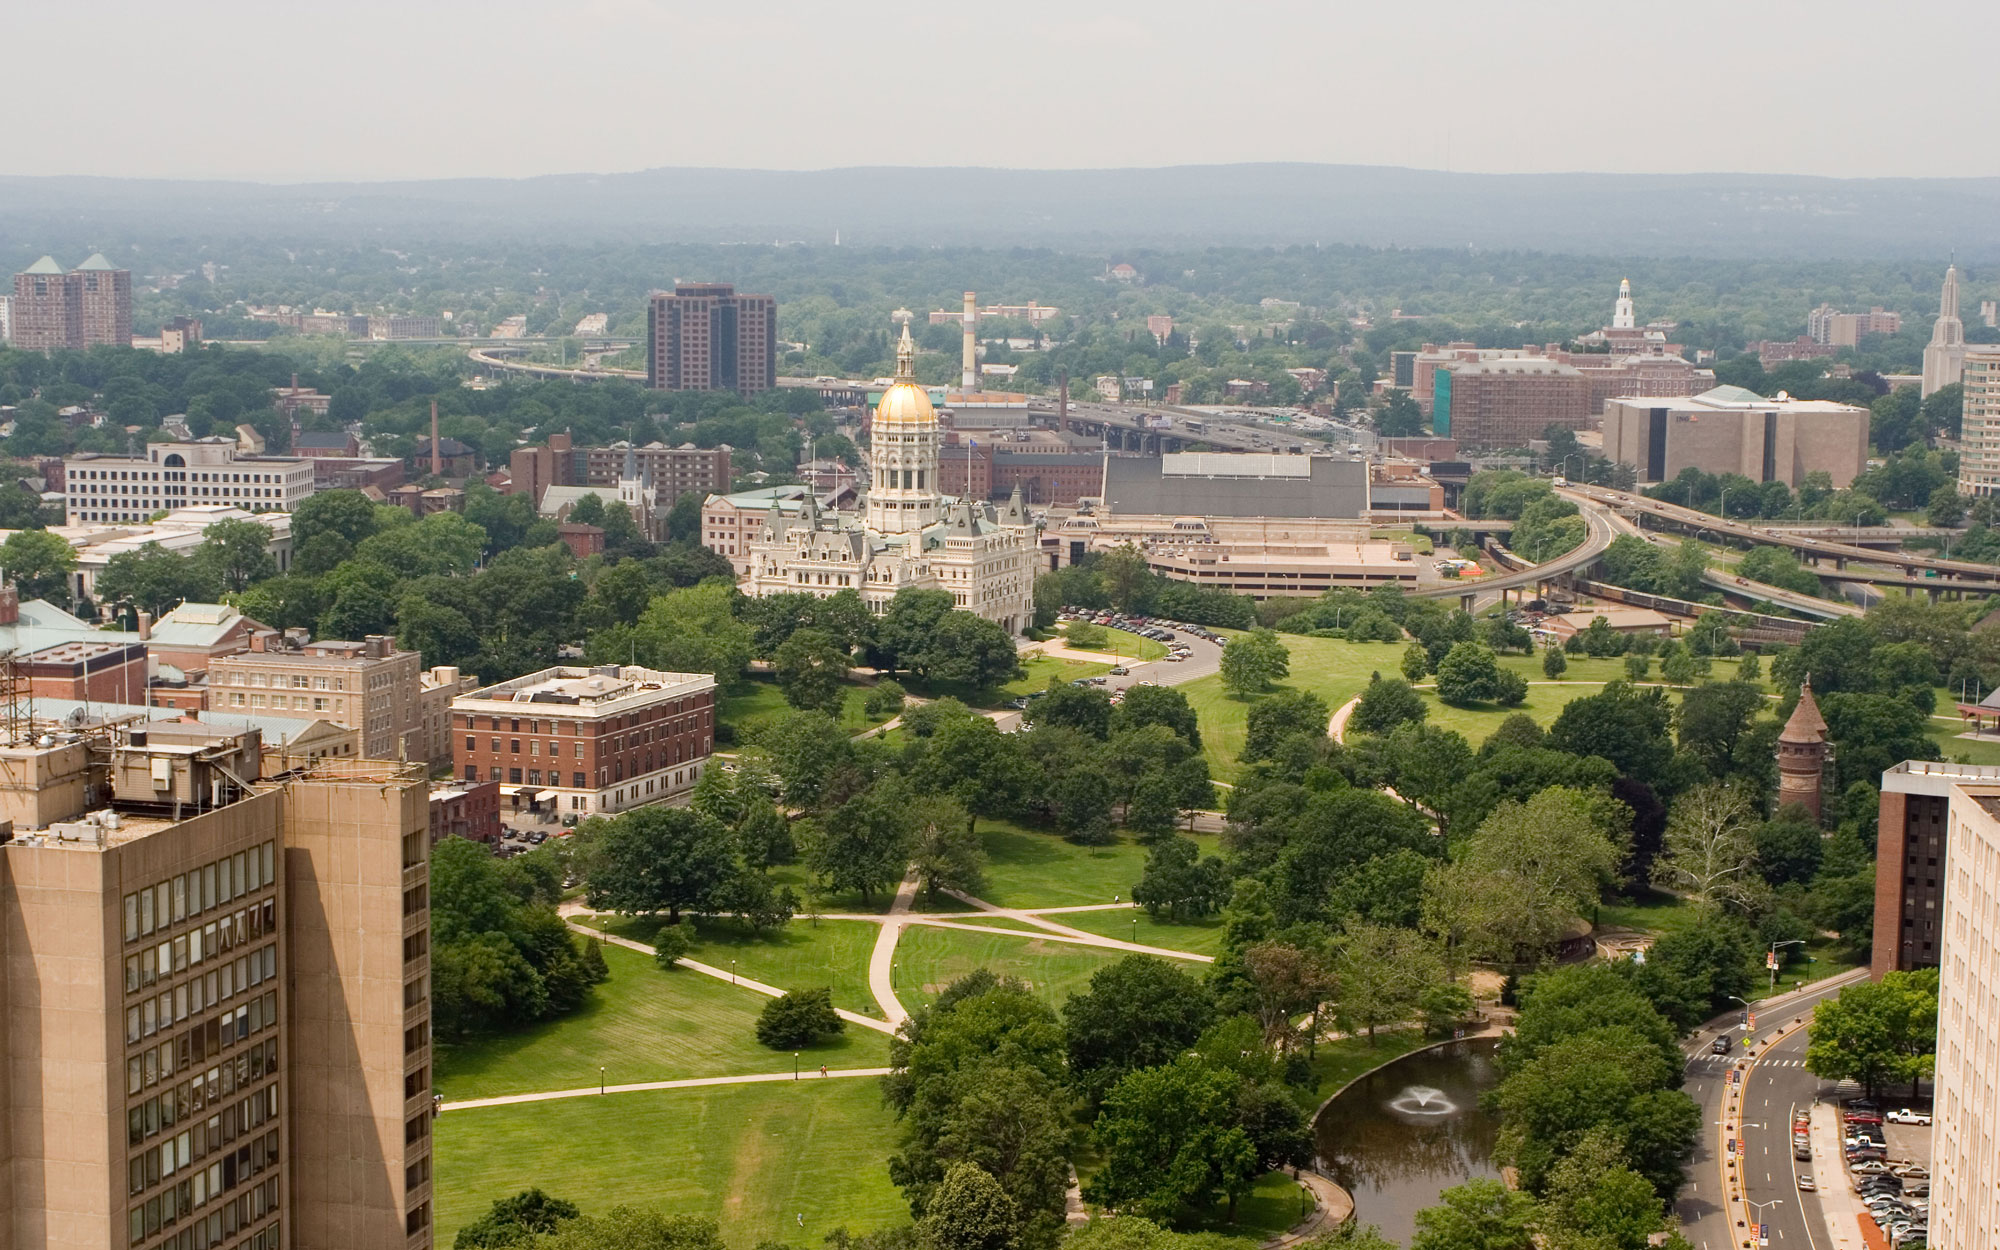 Connecticut from the Travelers Tower